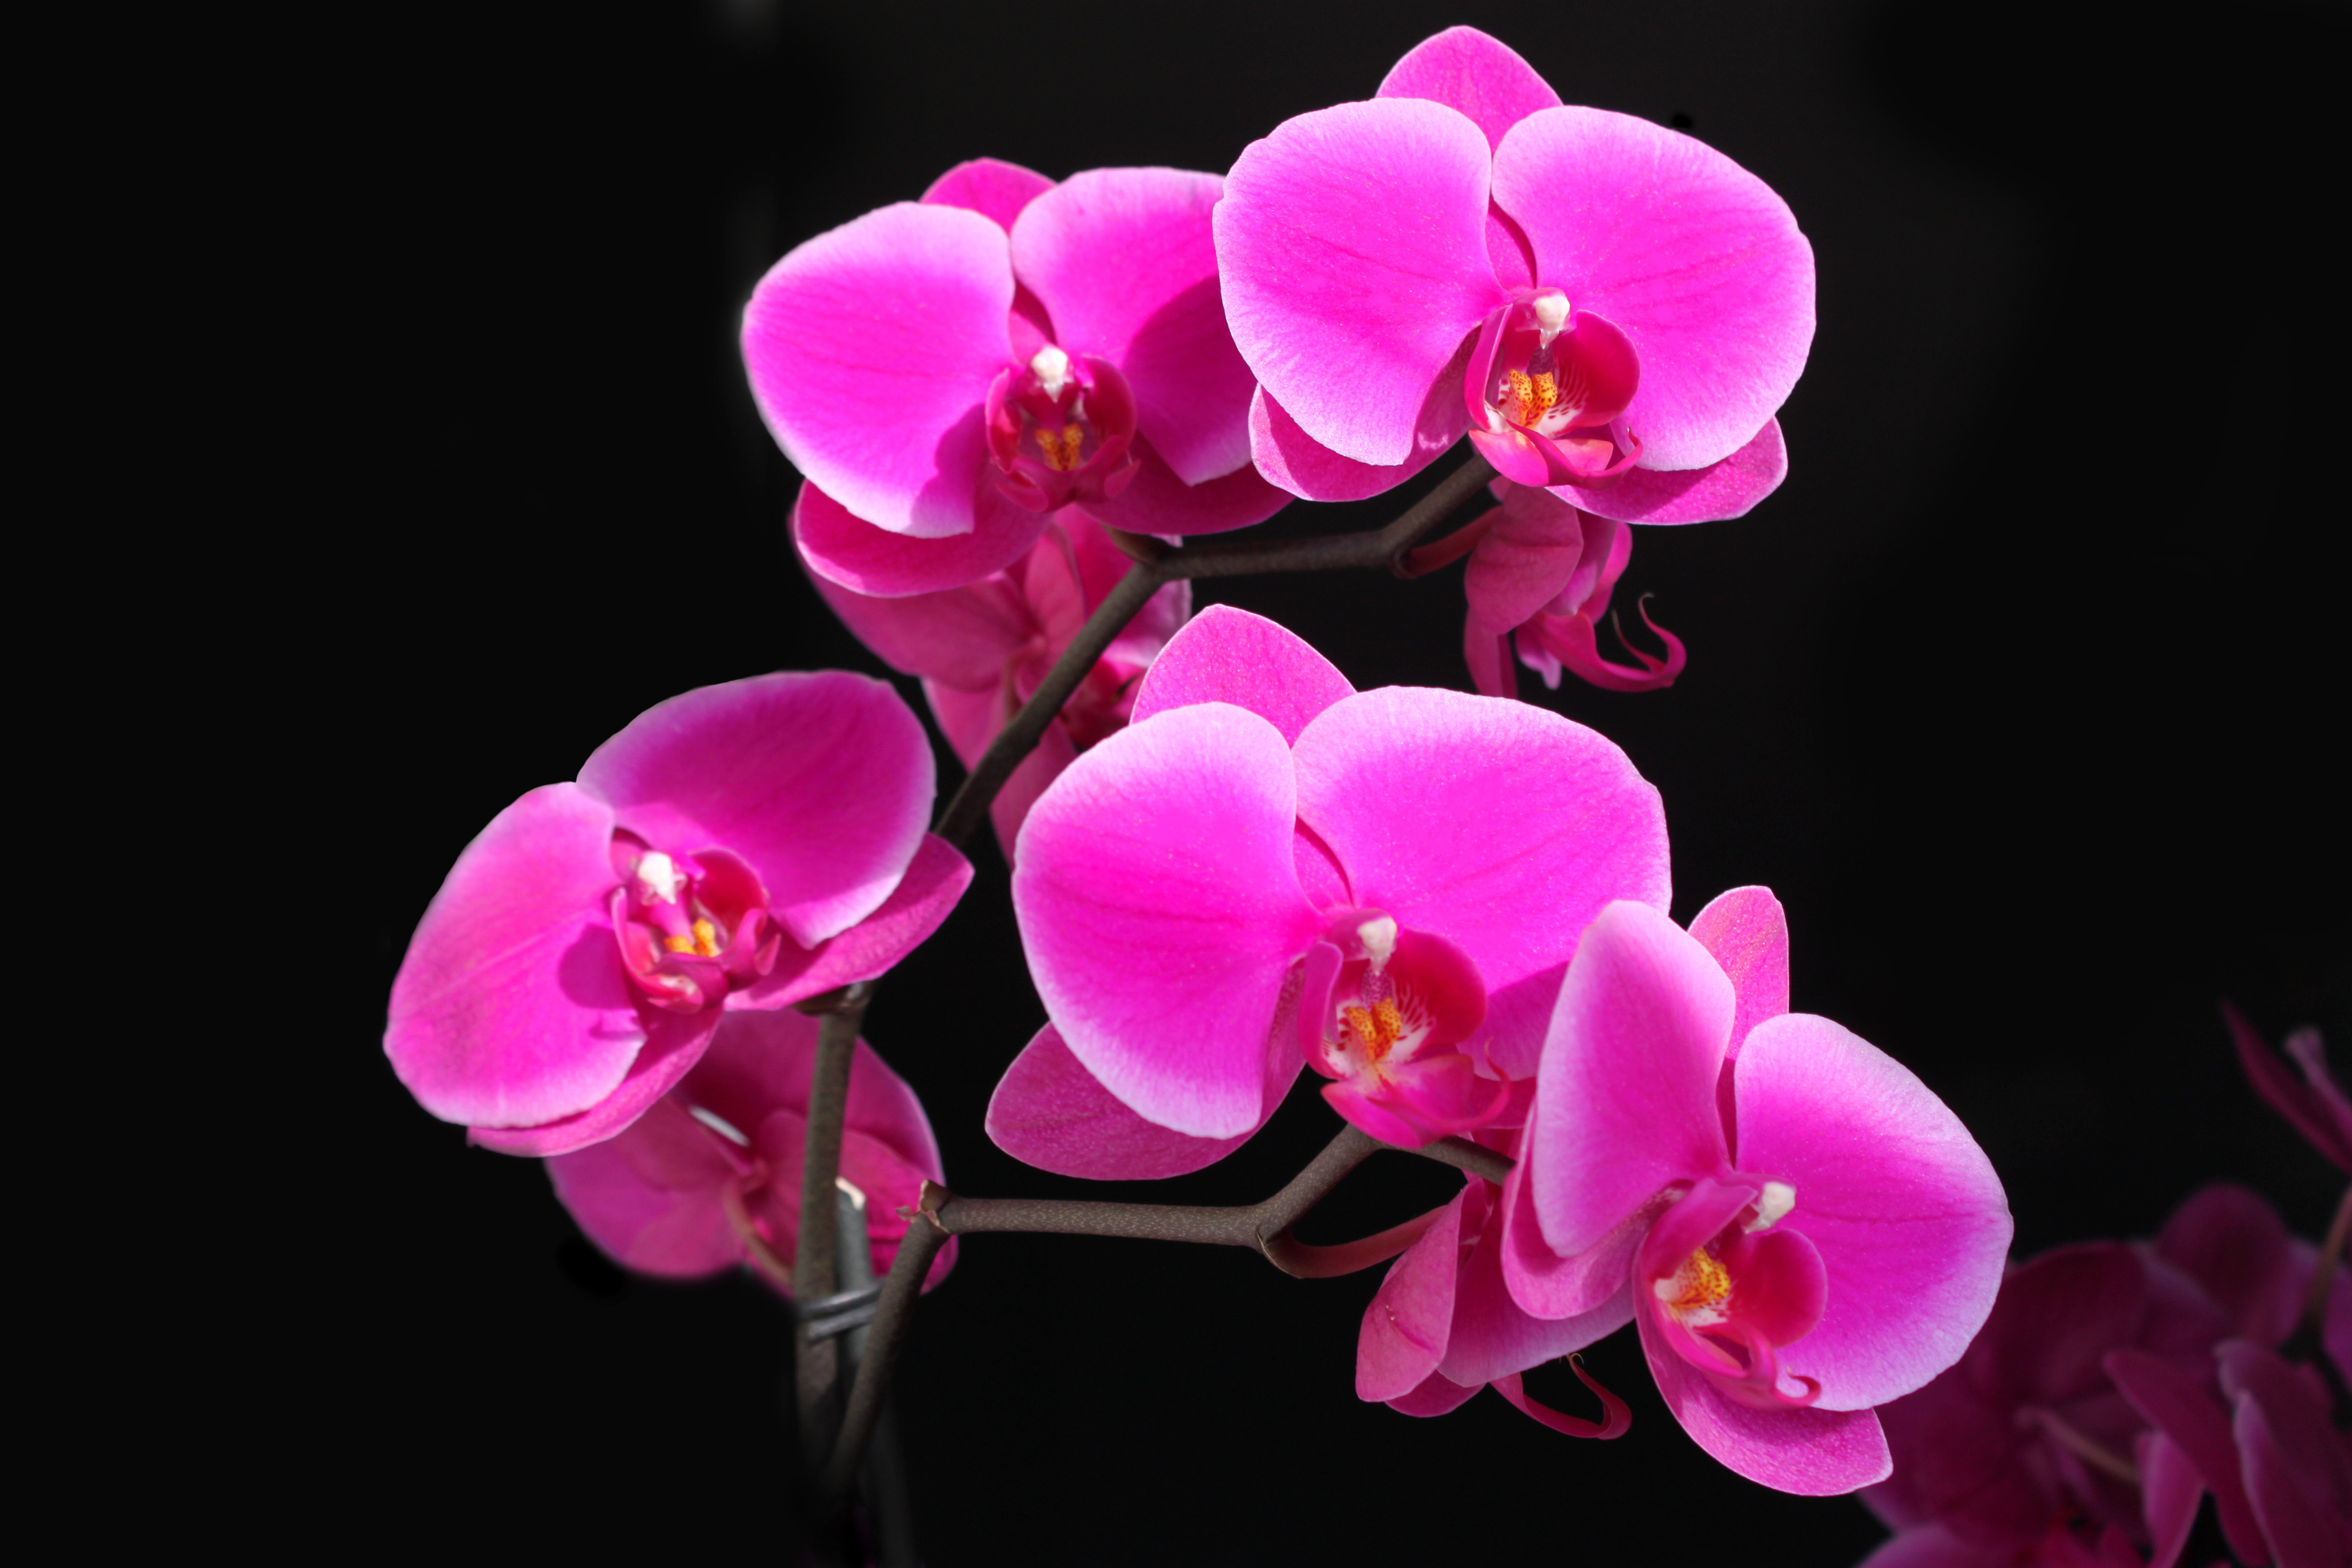 240 Orchid Hd Wallpapers Background Images Wallpaper Abyss